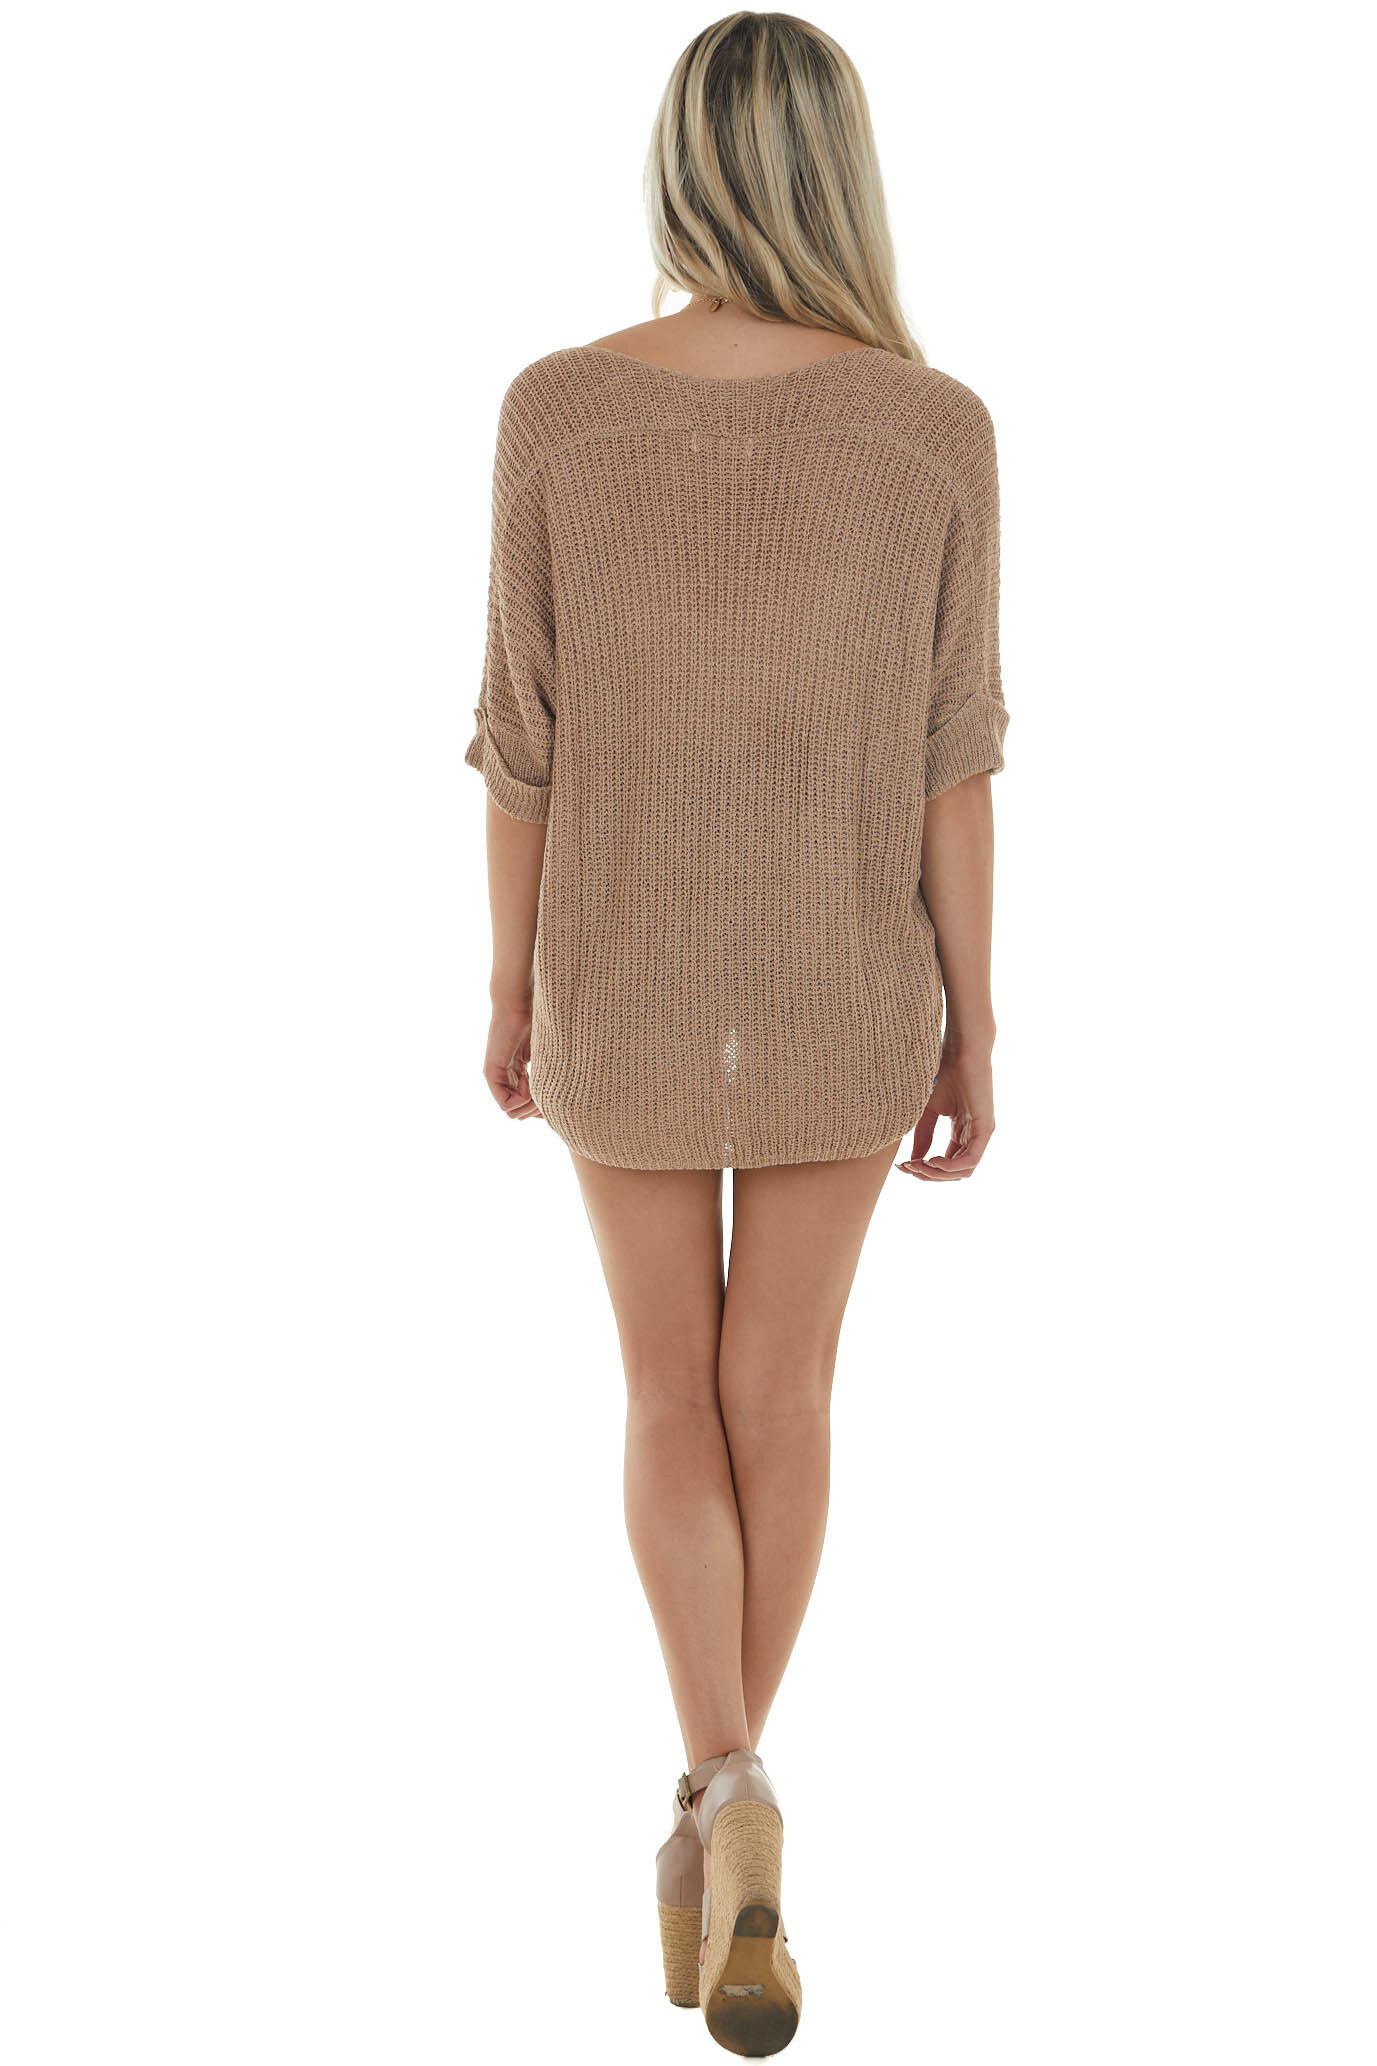 Taupe Rolled Cuff Loose Knit Top with Pocket